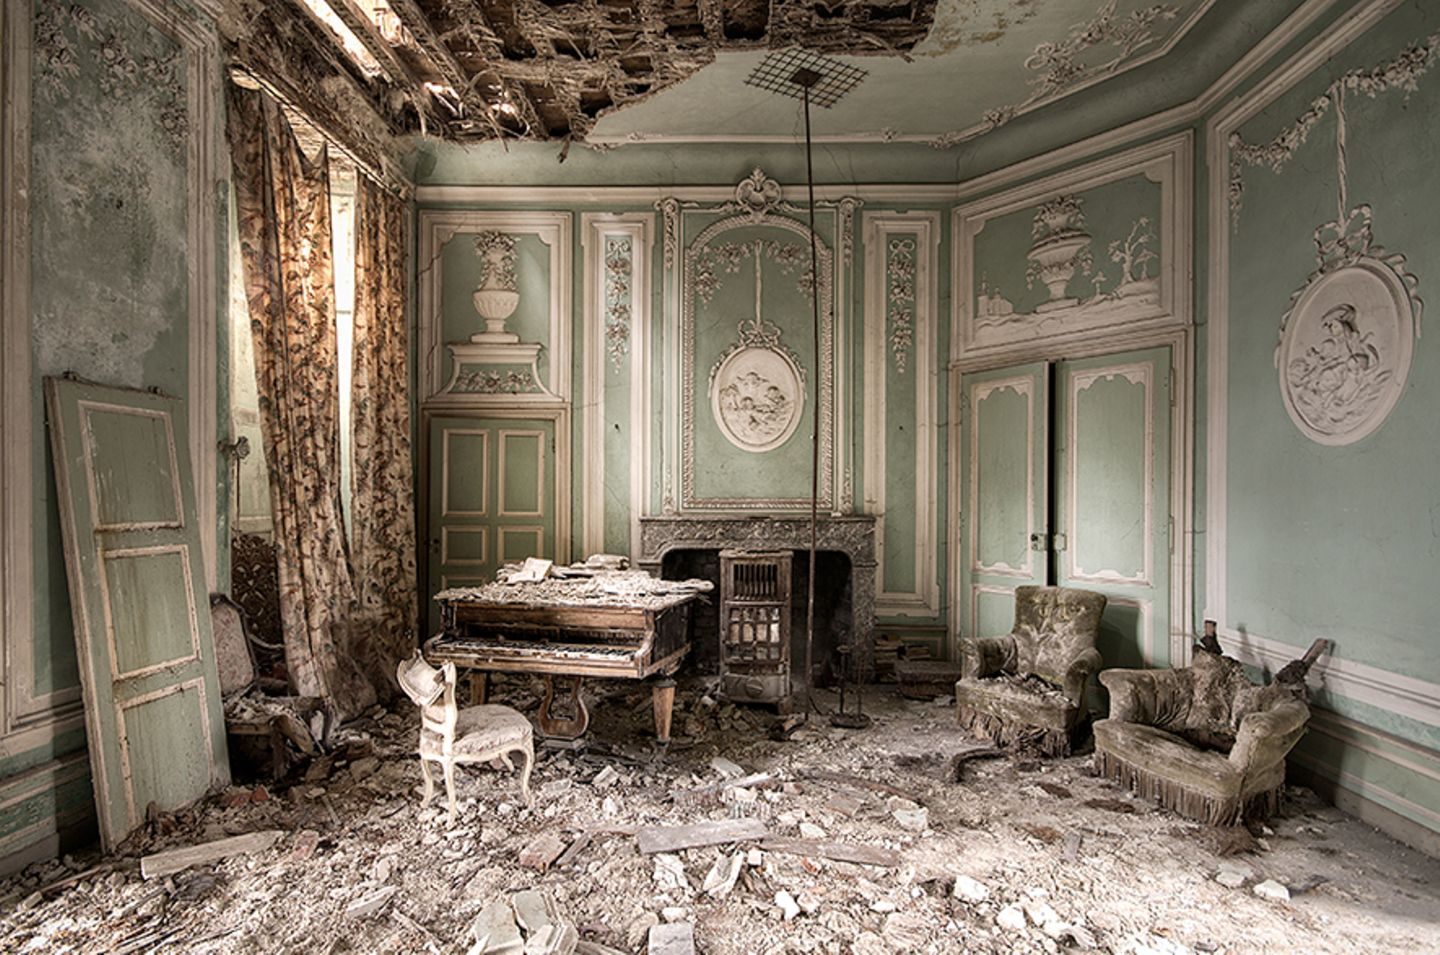 Tunes of Decay